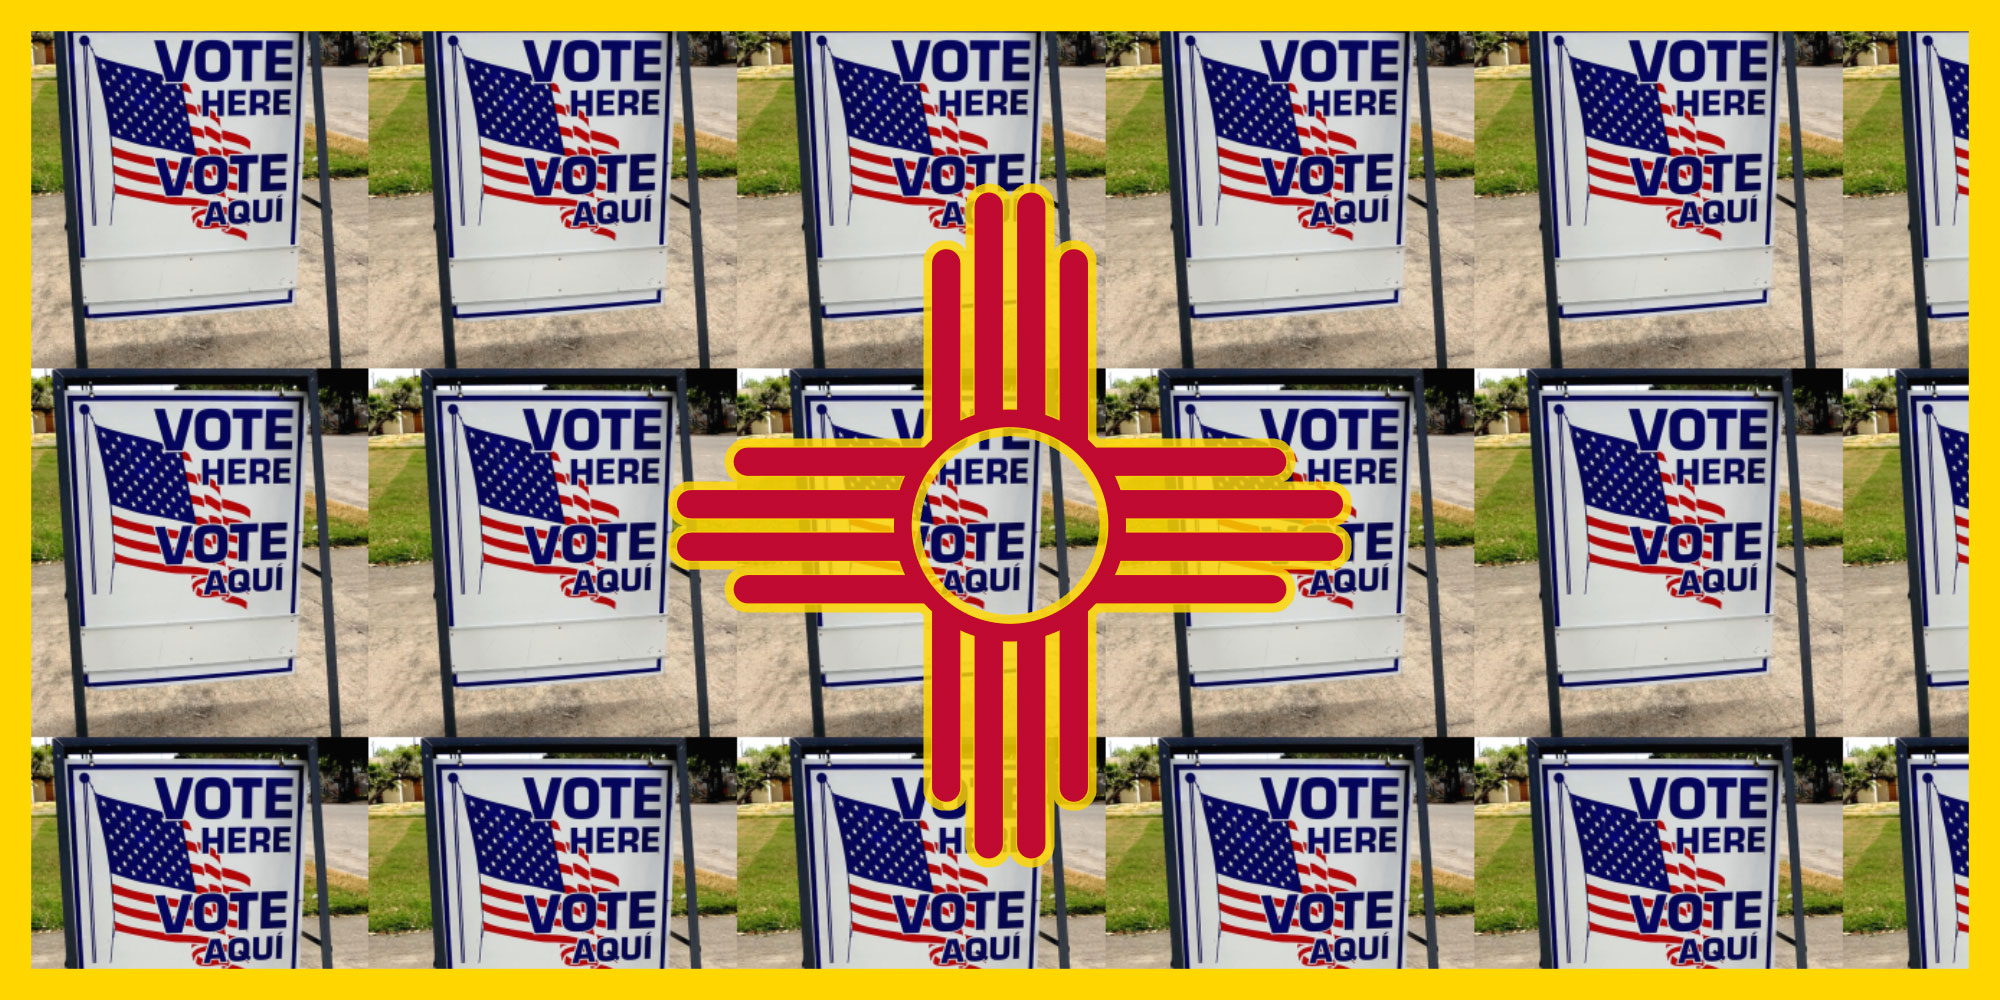 Exit survey analysis finds Santa Fe voters strongly support ranked choice voting, have high confidence in city elections